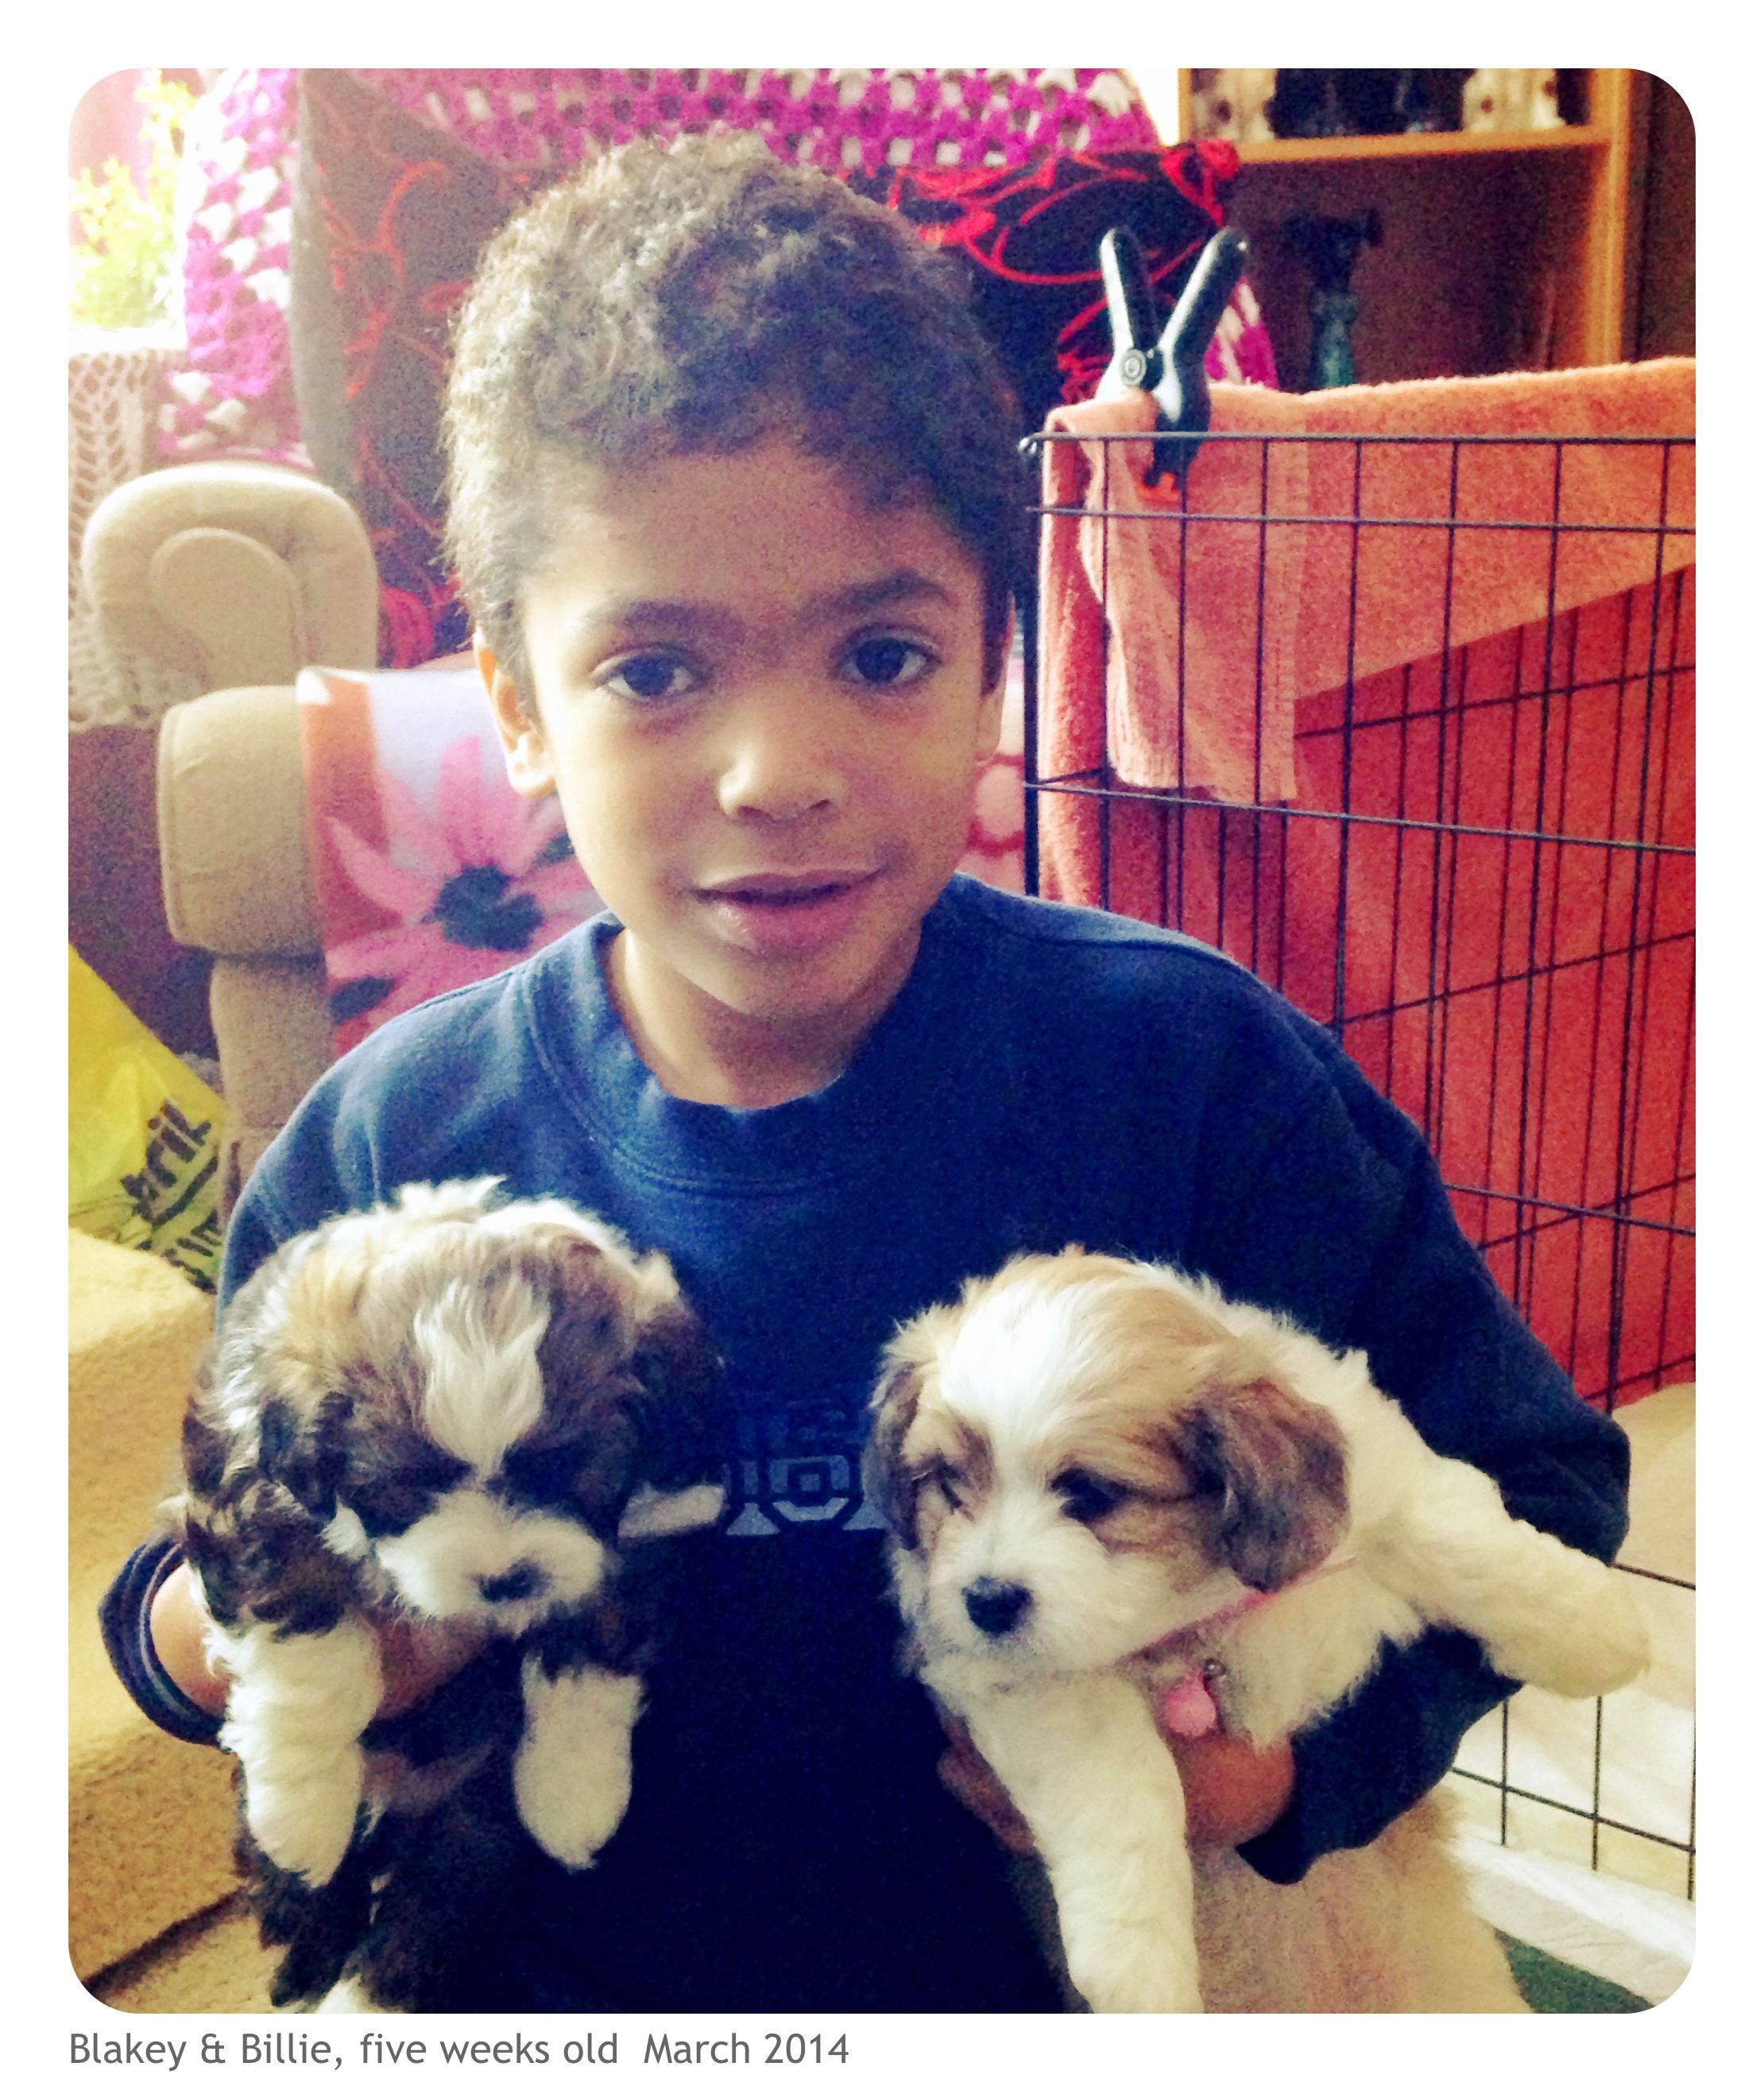 Seven Week Old Aussiechon Puppies Mini Aussie X Bichon Frise Bichon Frise Puppies Bichon